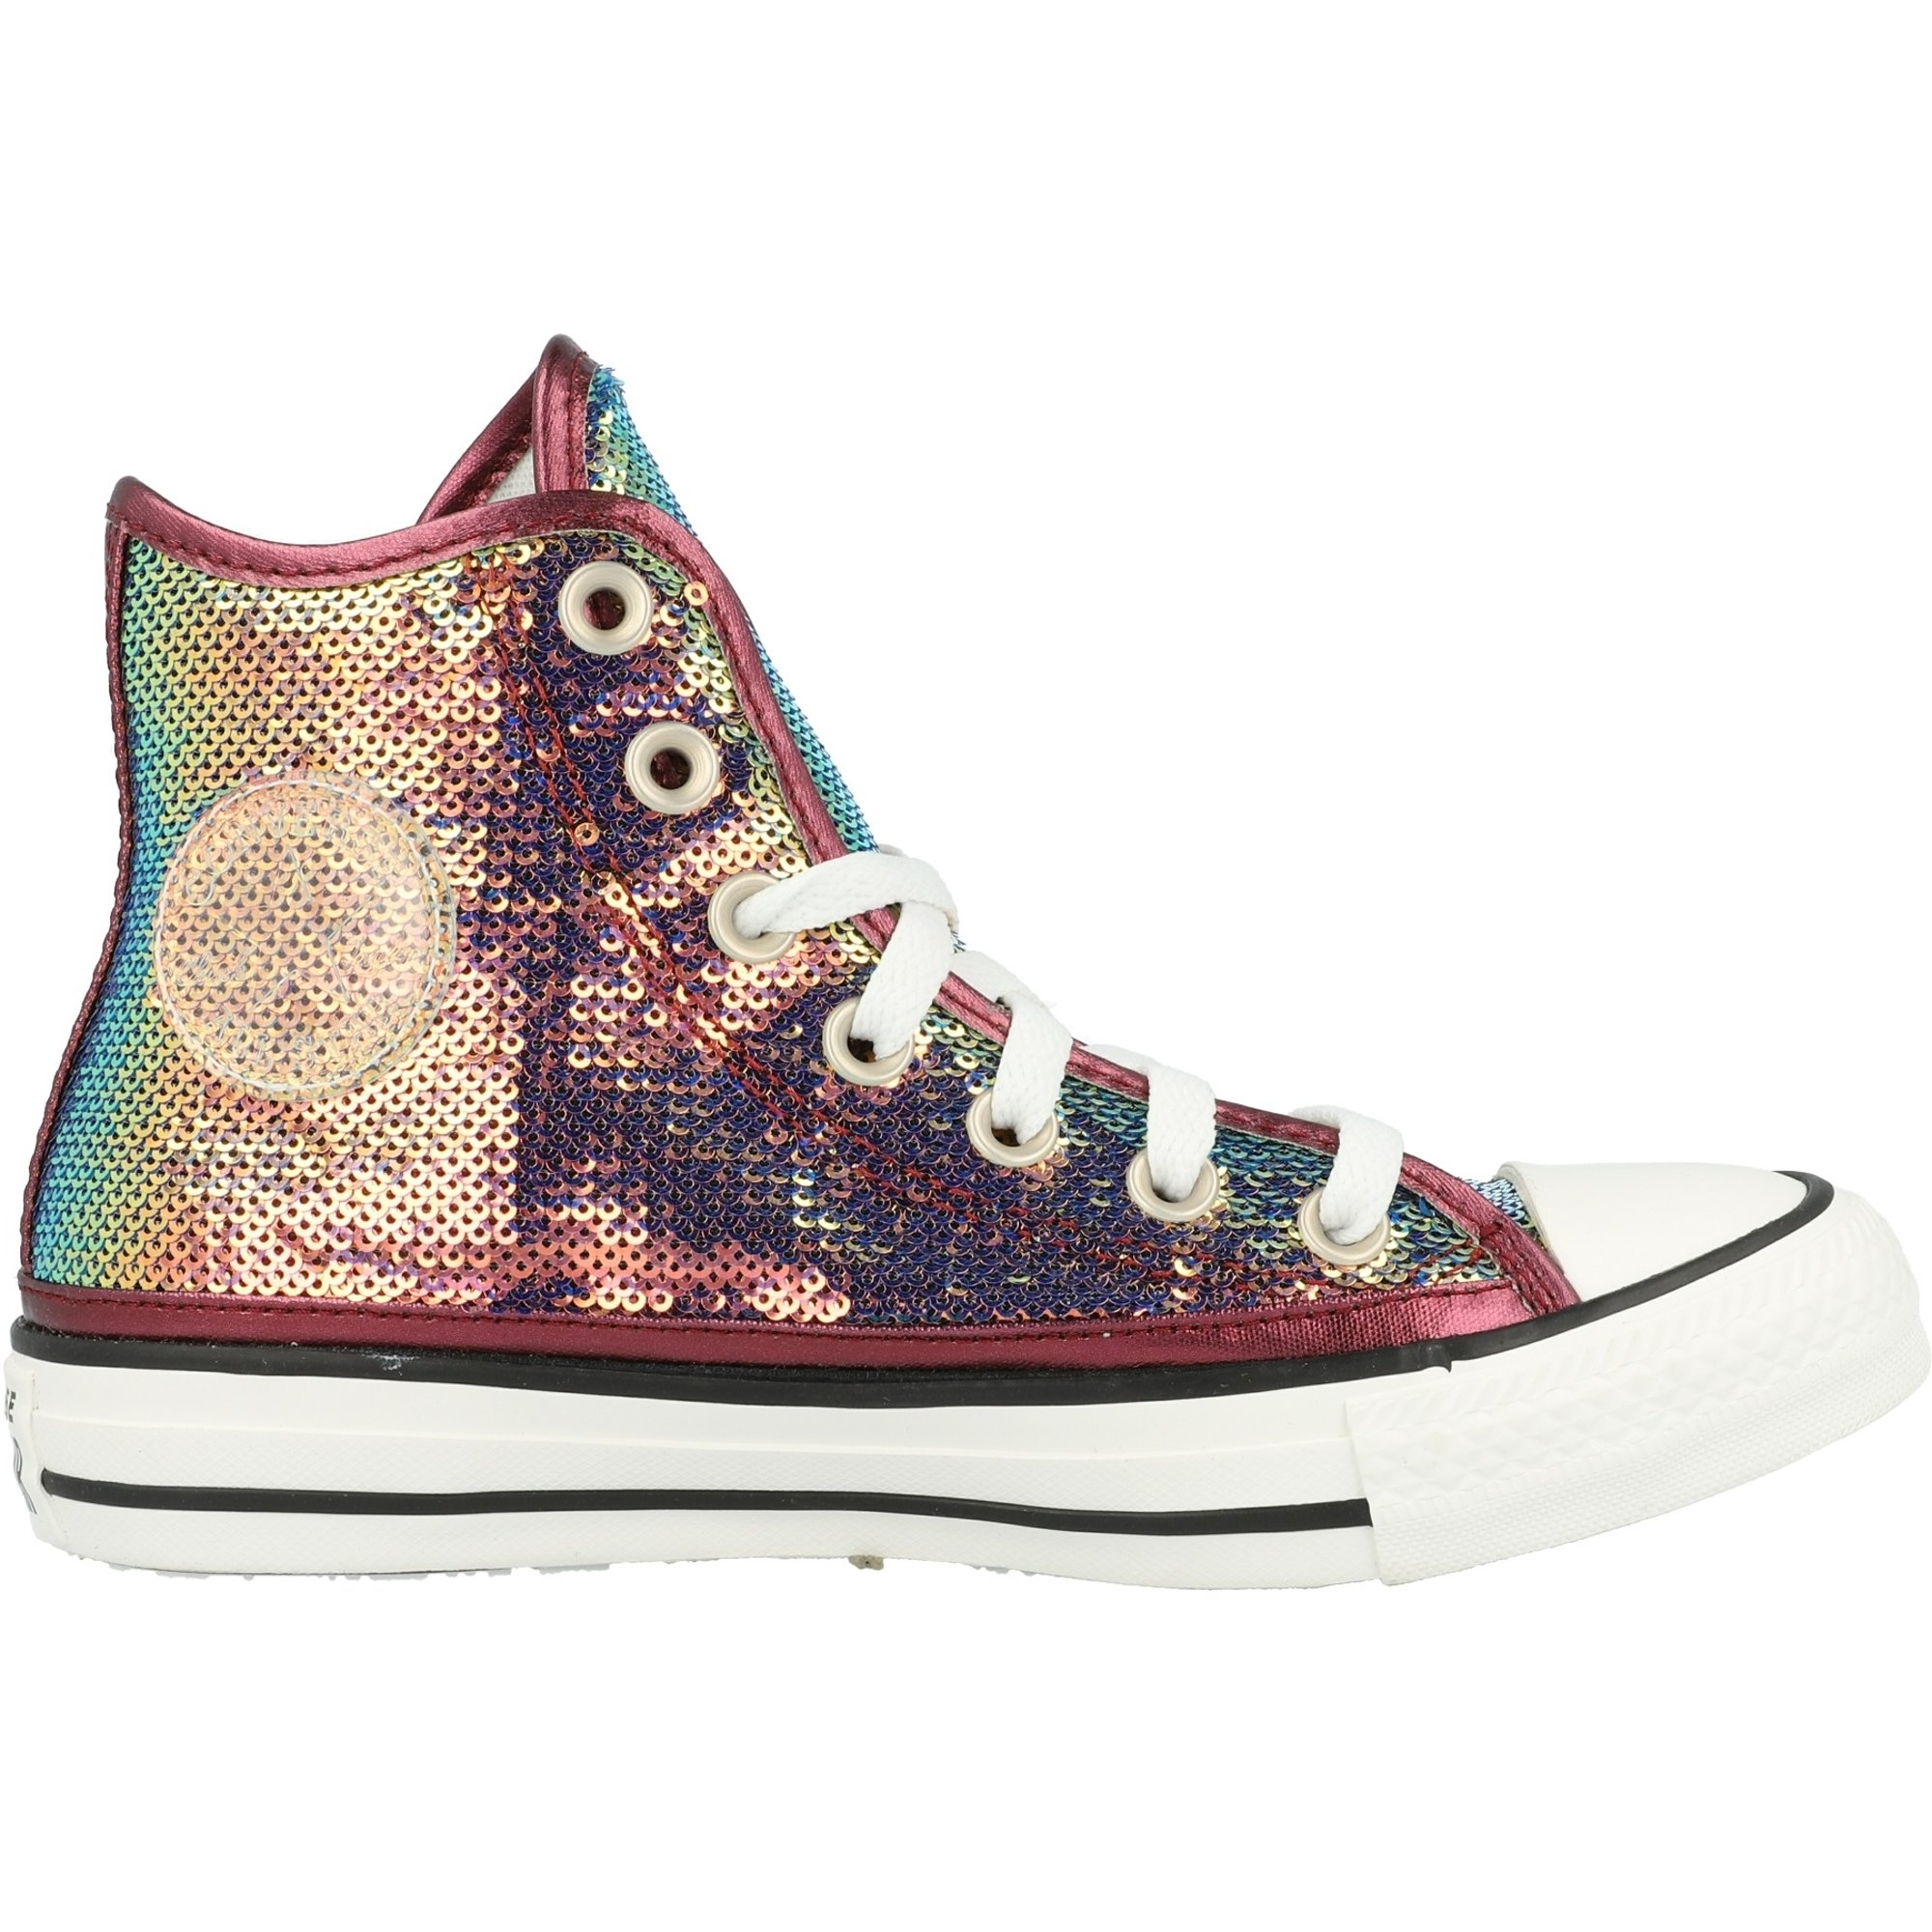 Womens Mini Sequins Chuck Taylor All Star High Top